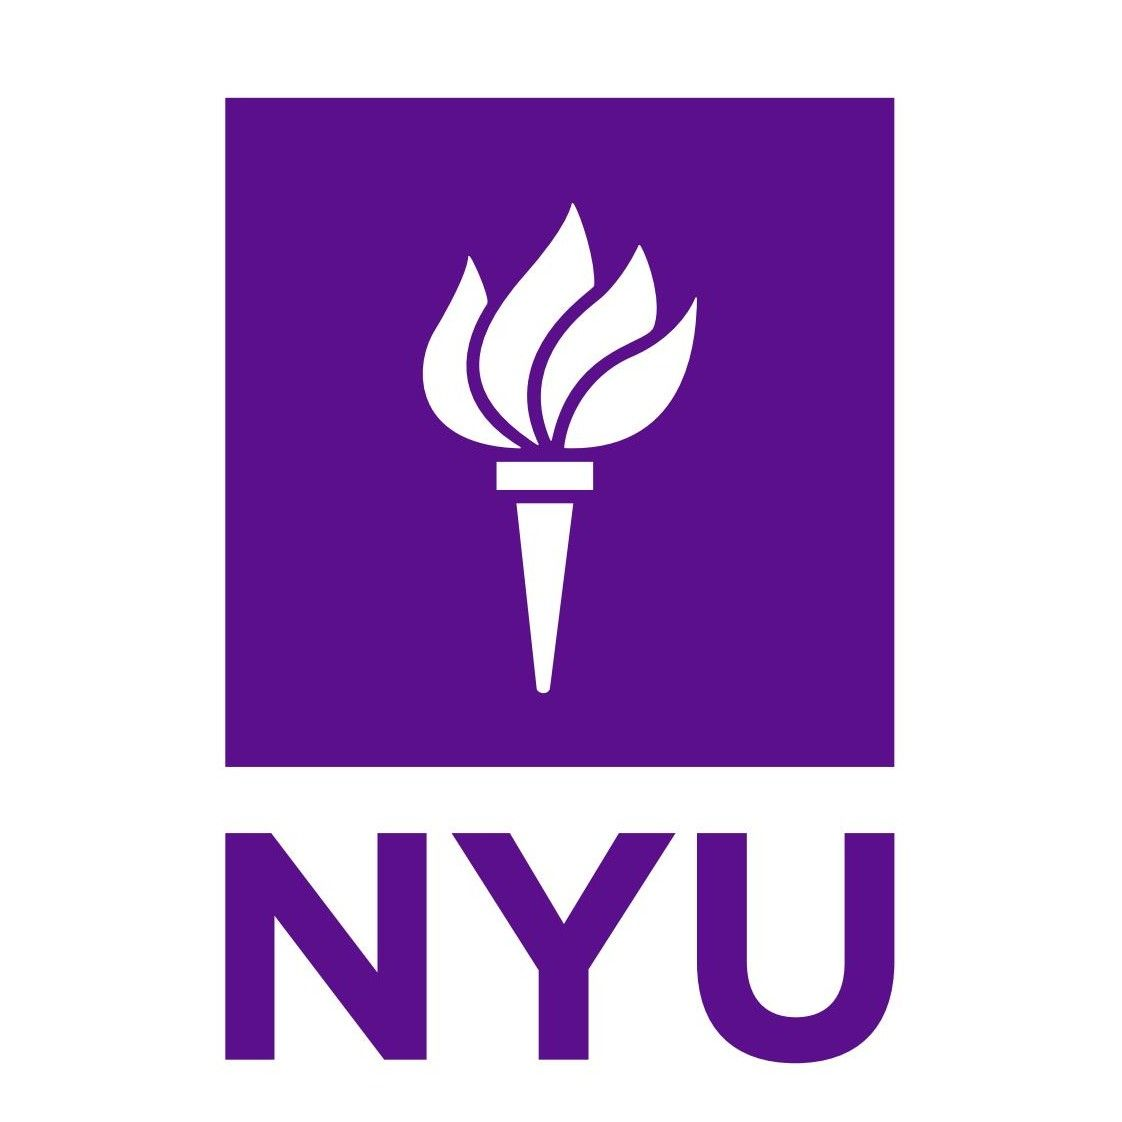 Nyu Logo New York University Png Free Downloads Logo Brand Emblems York University Journalism College Nyu